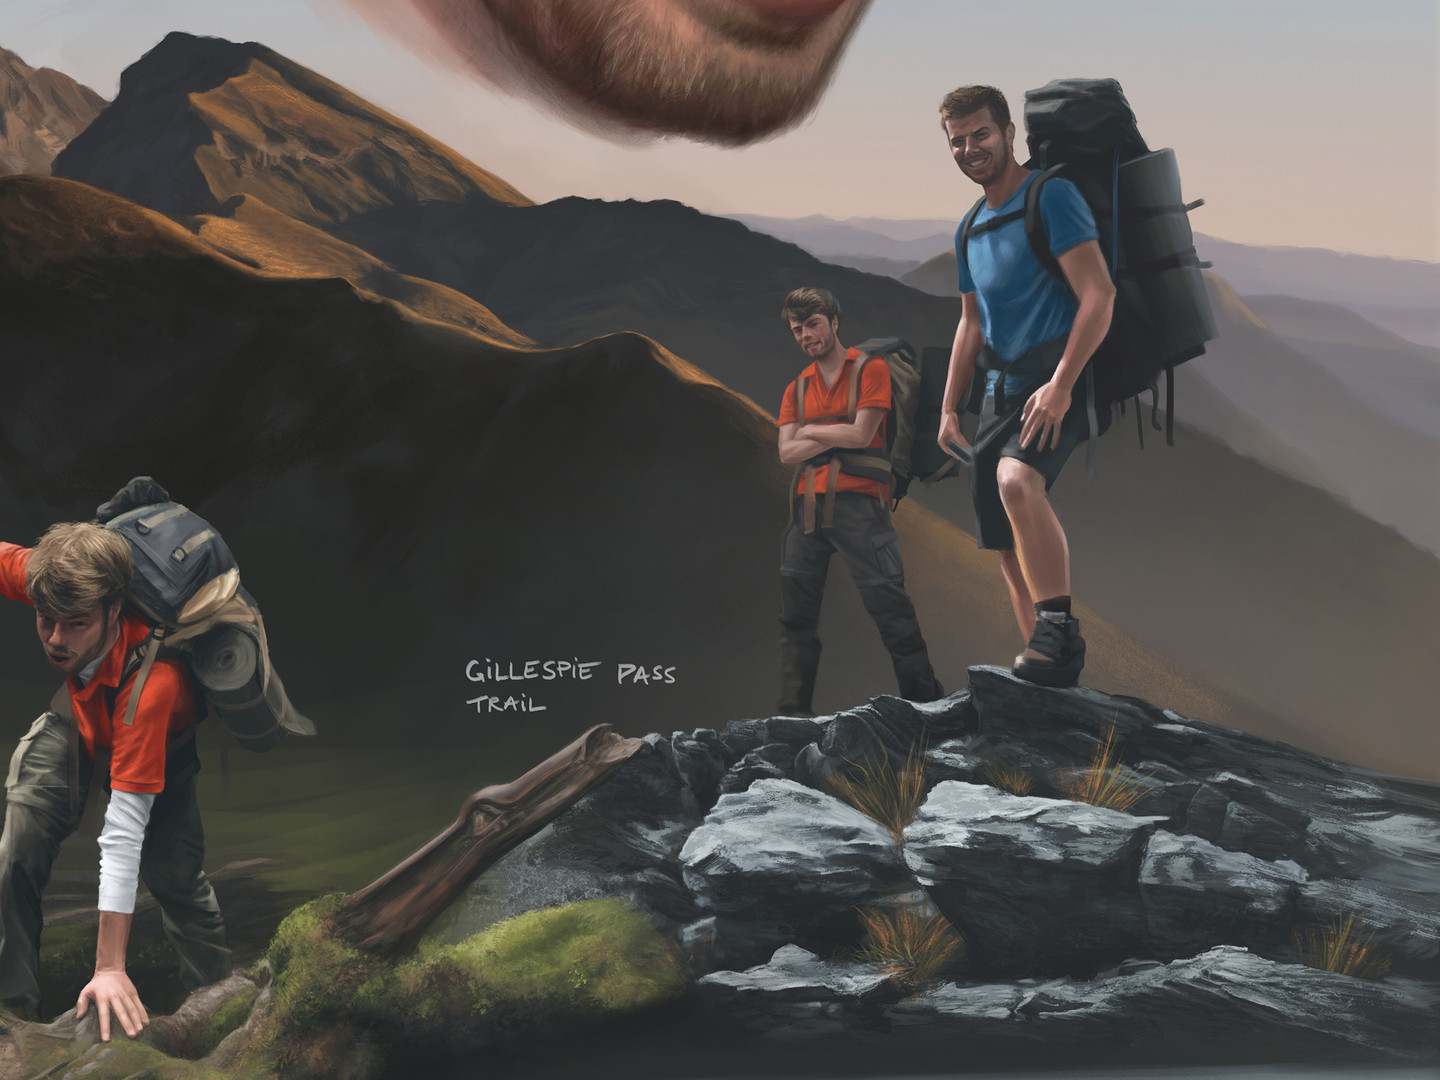 detail // hiking poses